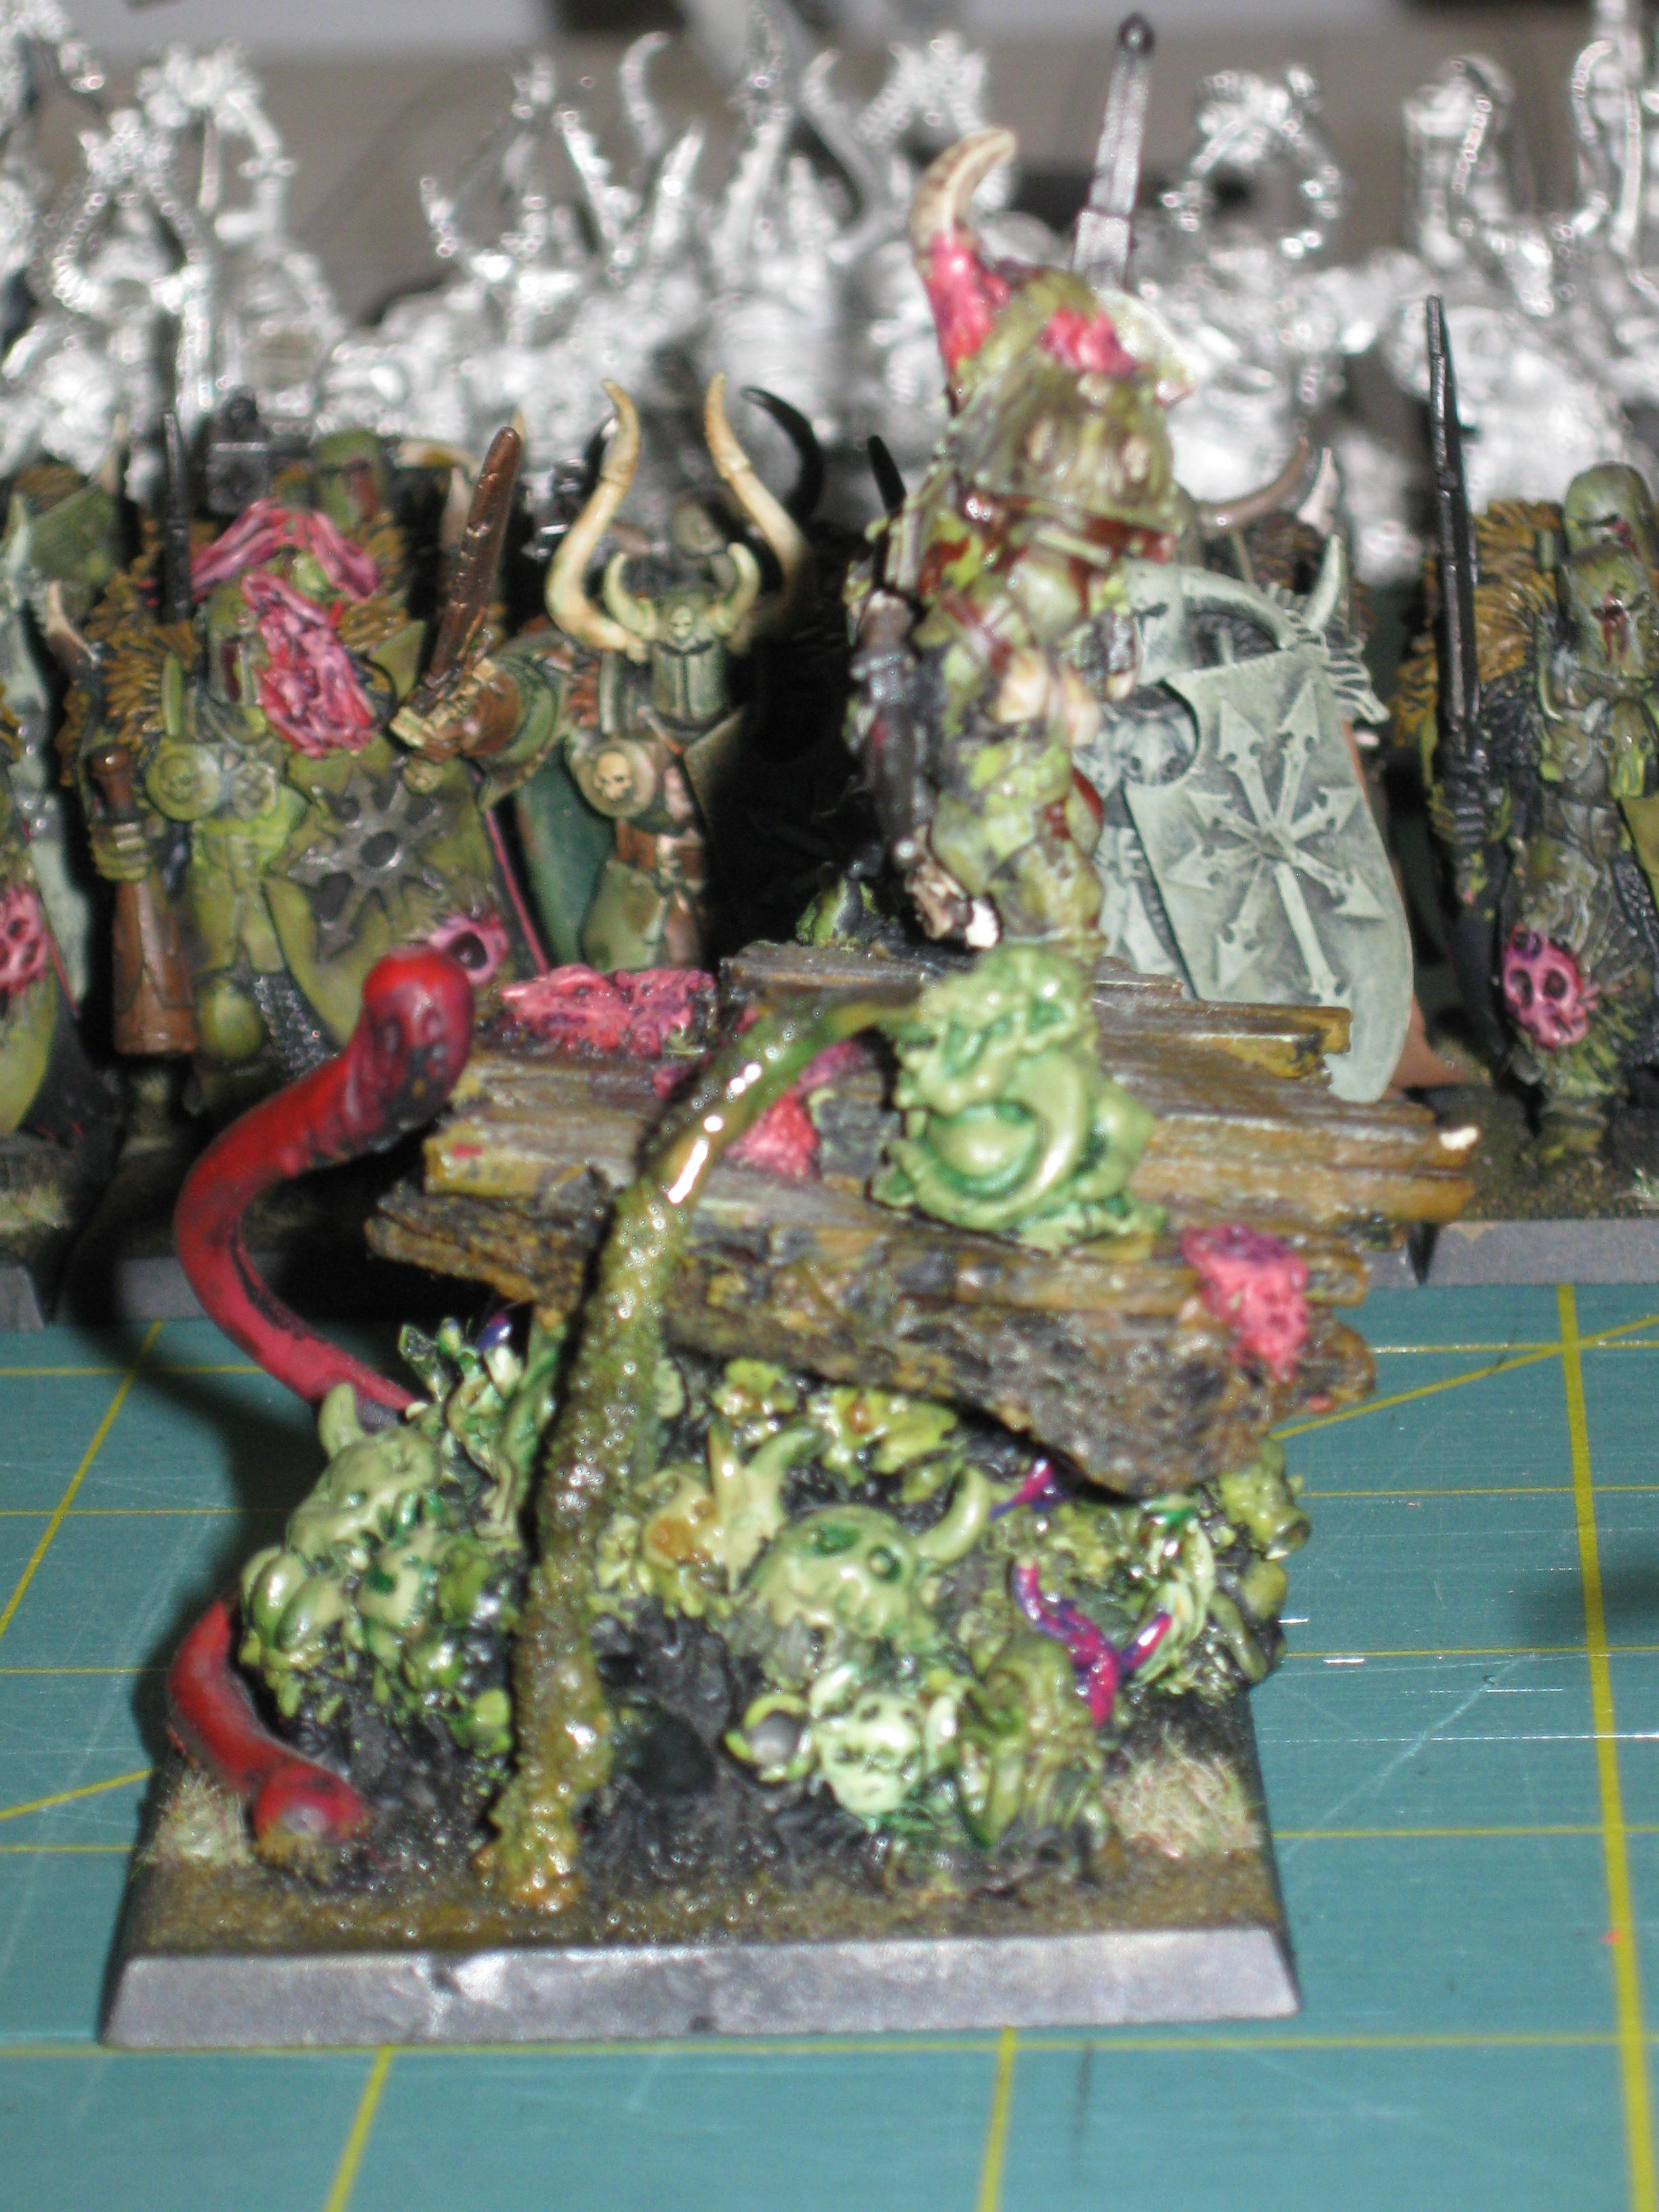 Army, Battle, Chaos, Host, Lord, Nurgle, Nurgling, Of, Palanquin, Rot, Tarnished, The, Warhammer Fantasy, Warriors, Woc